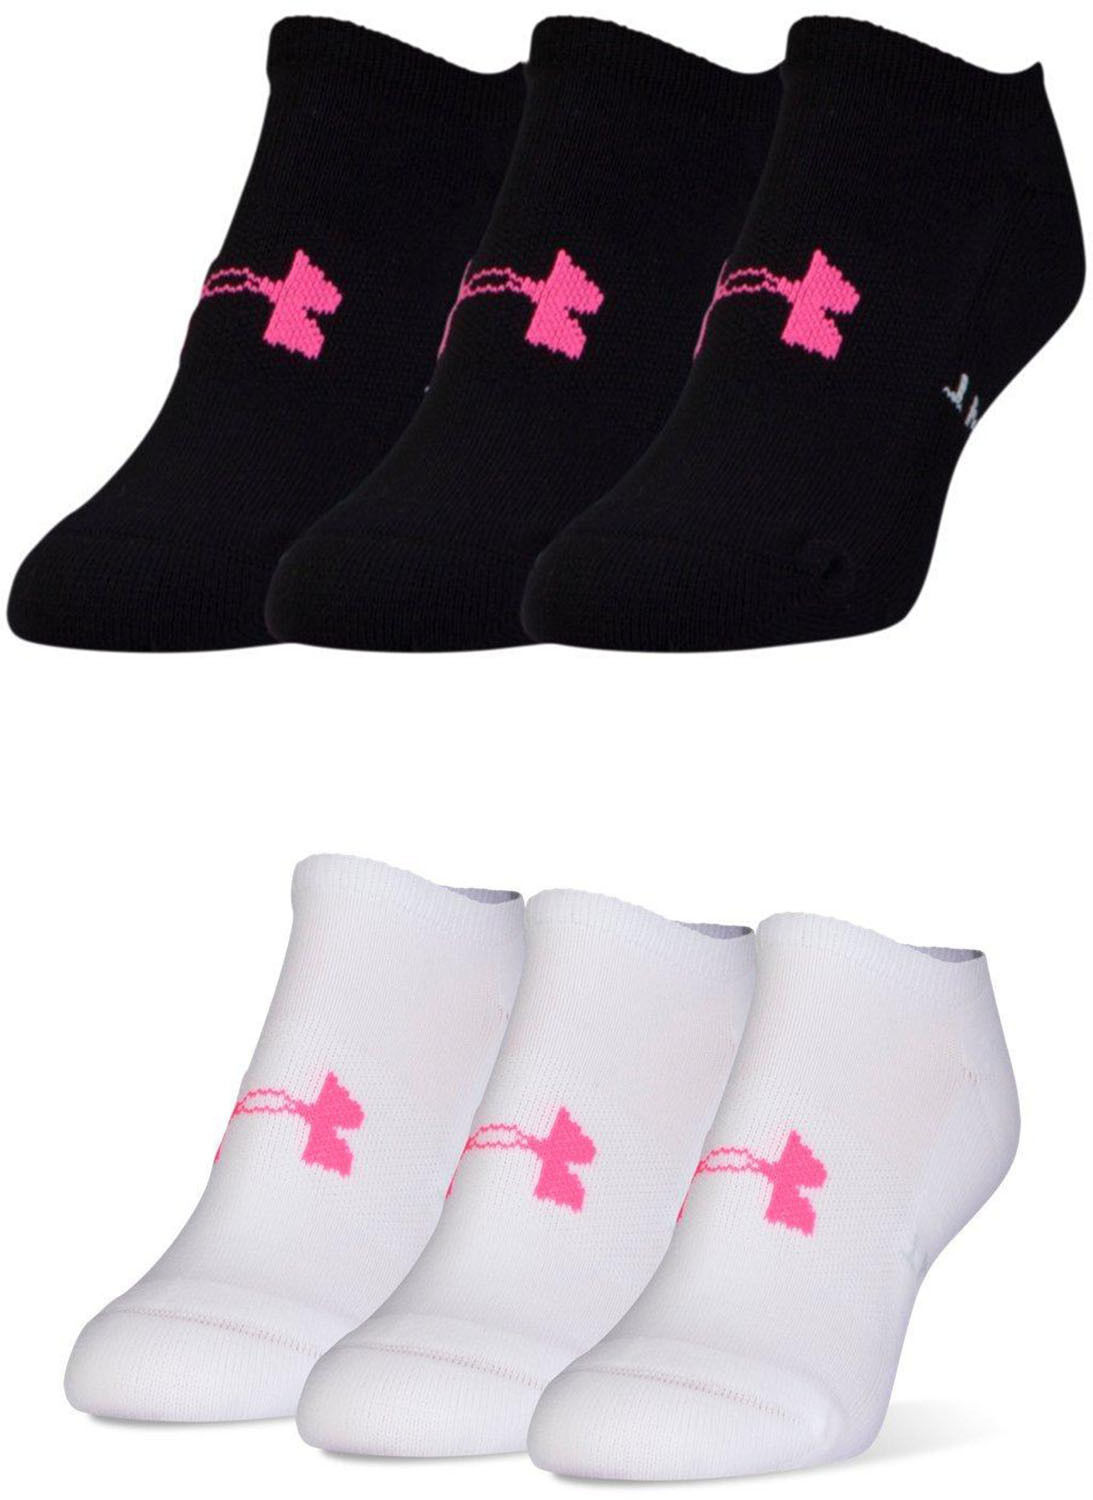 a8e1c675e Details about Under Armour Womens Athletic Solo Socks, 3 Pairs, 2 Colors